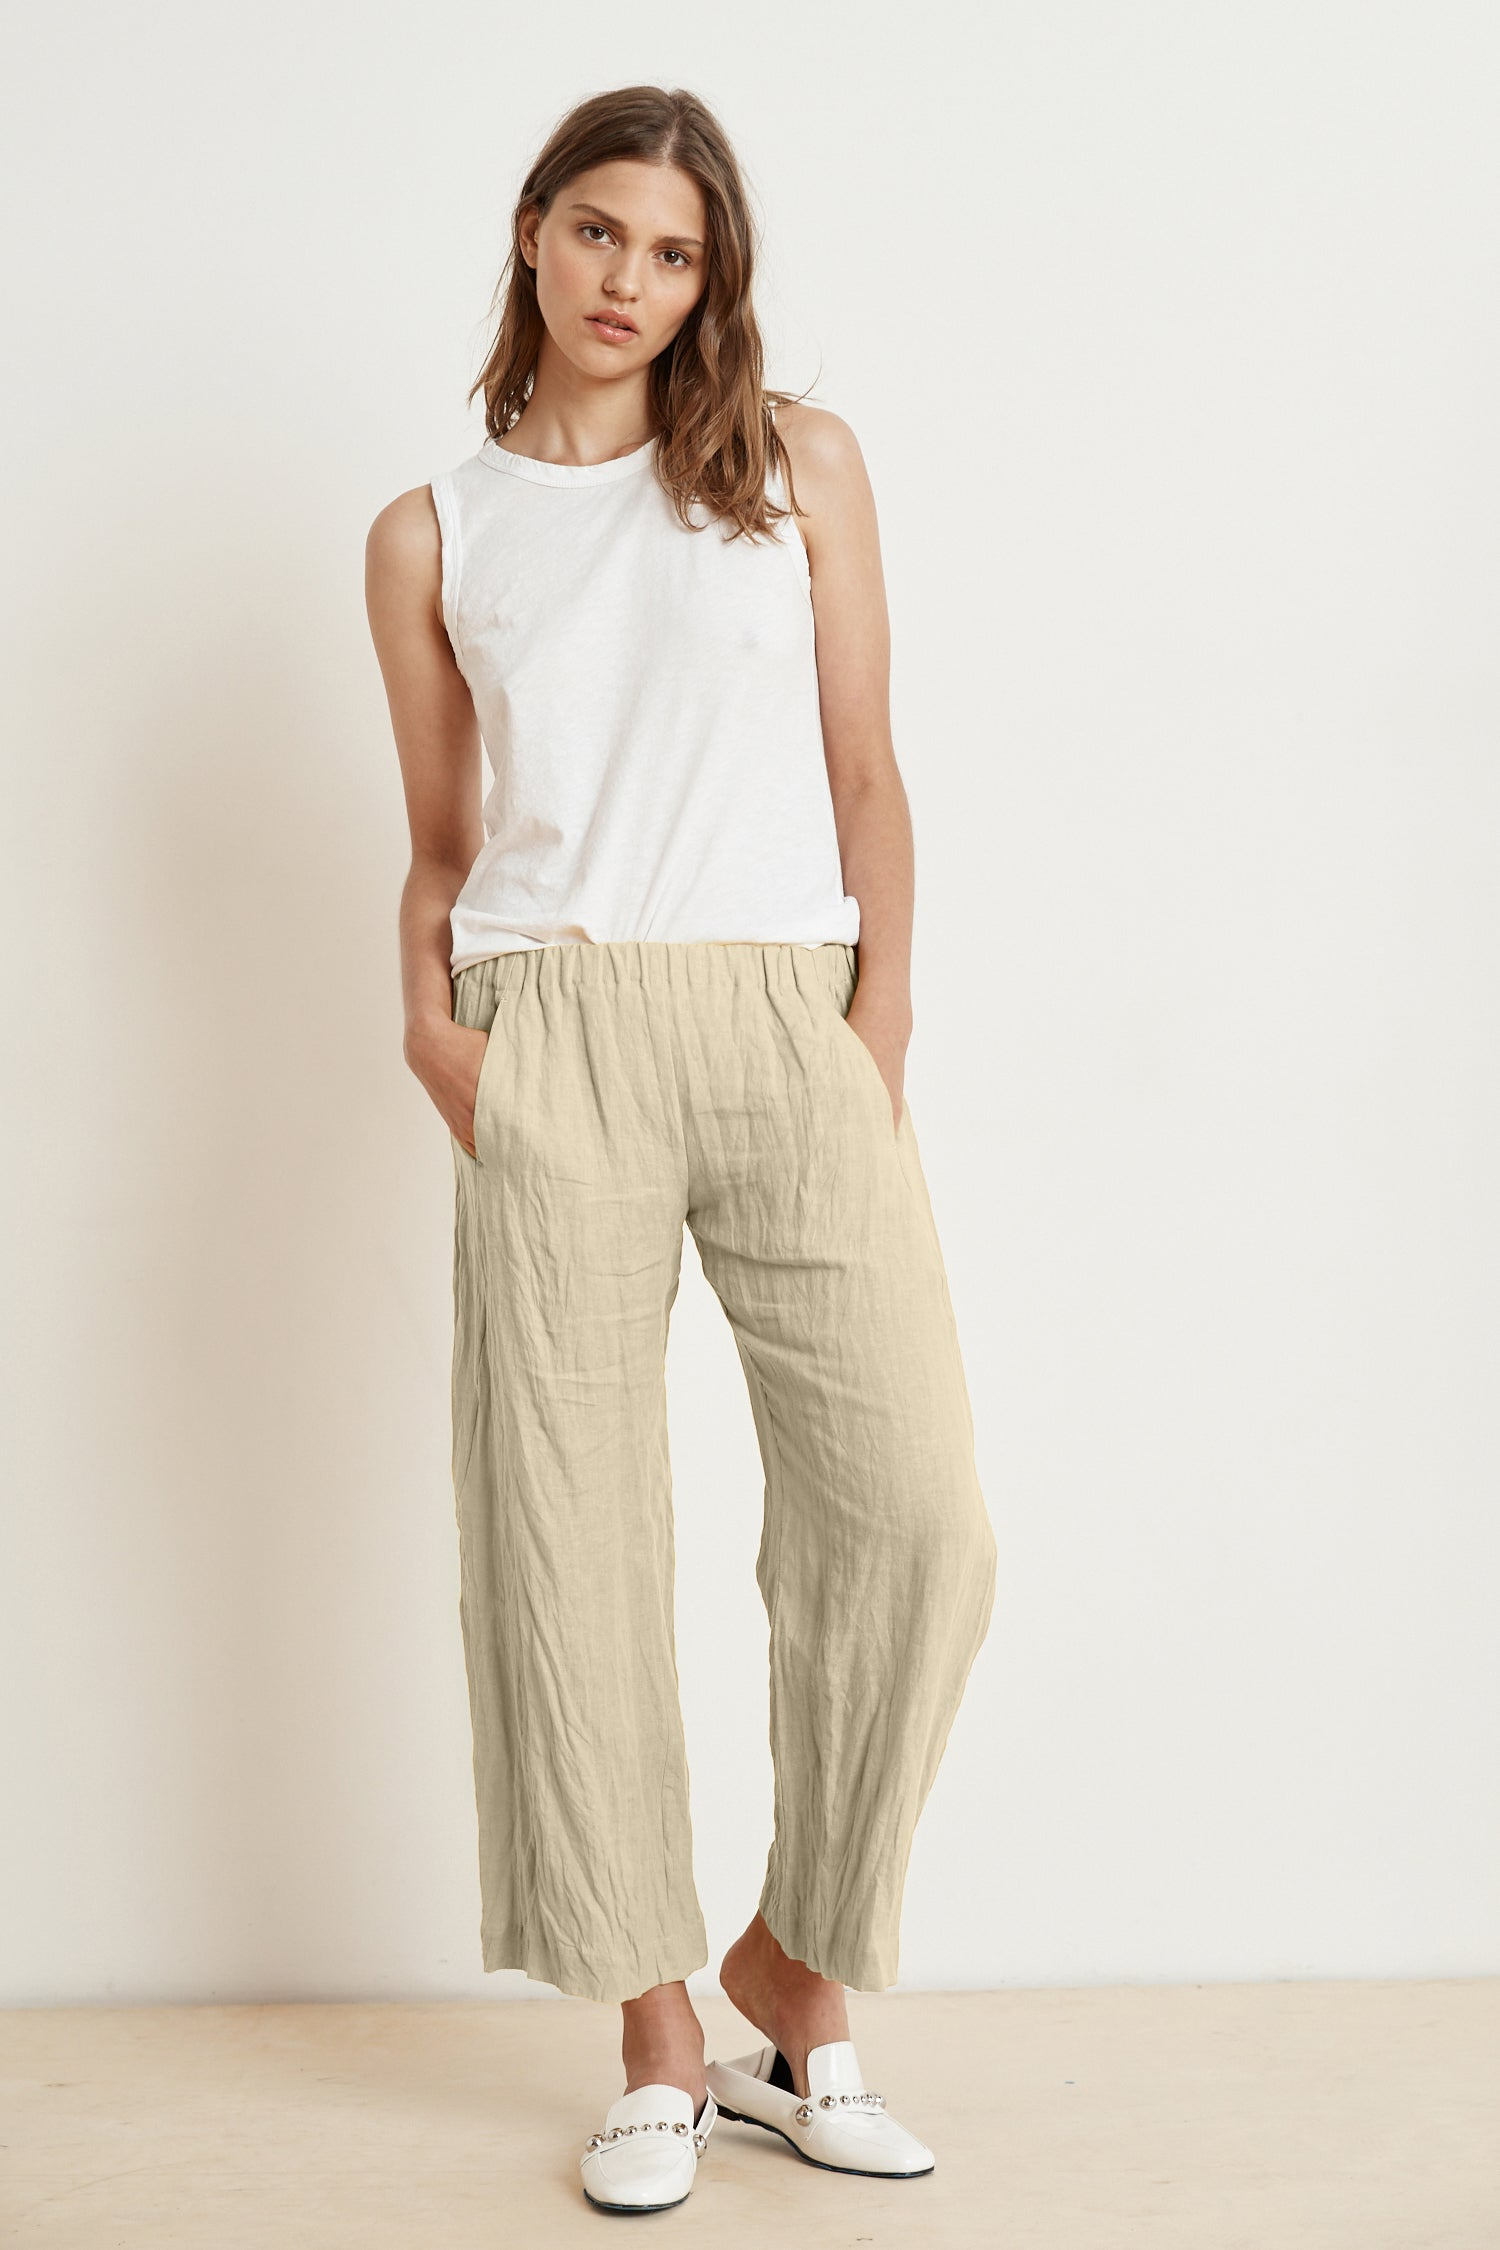 LOLA LINEN TROUSERS IN CAFE